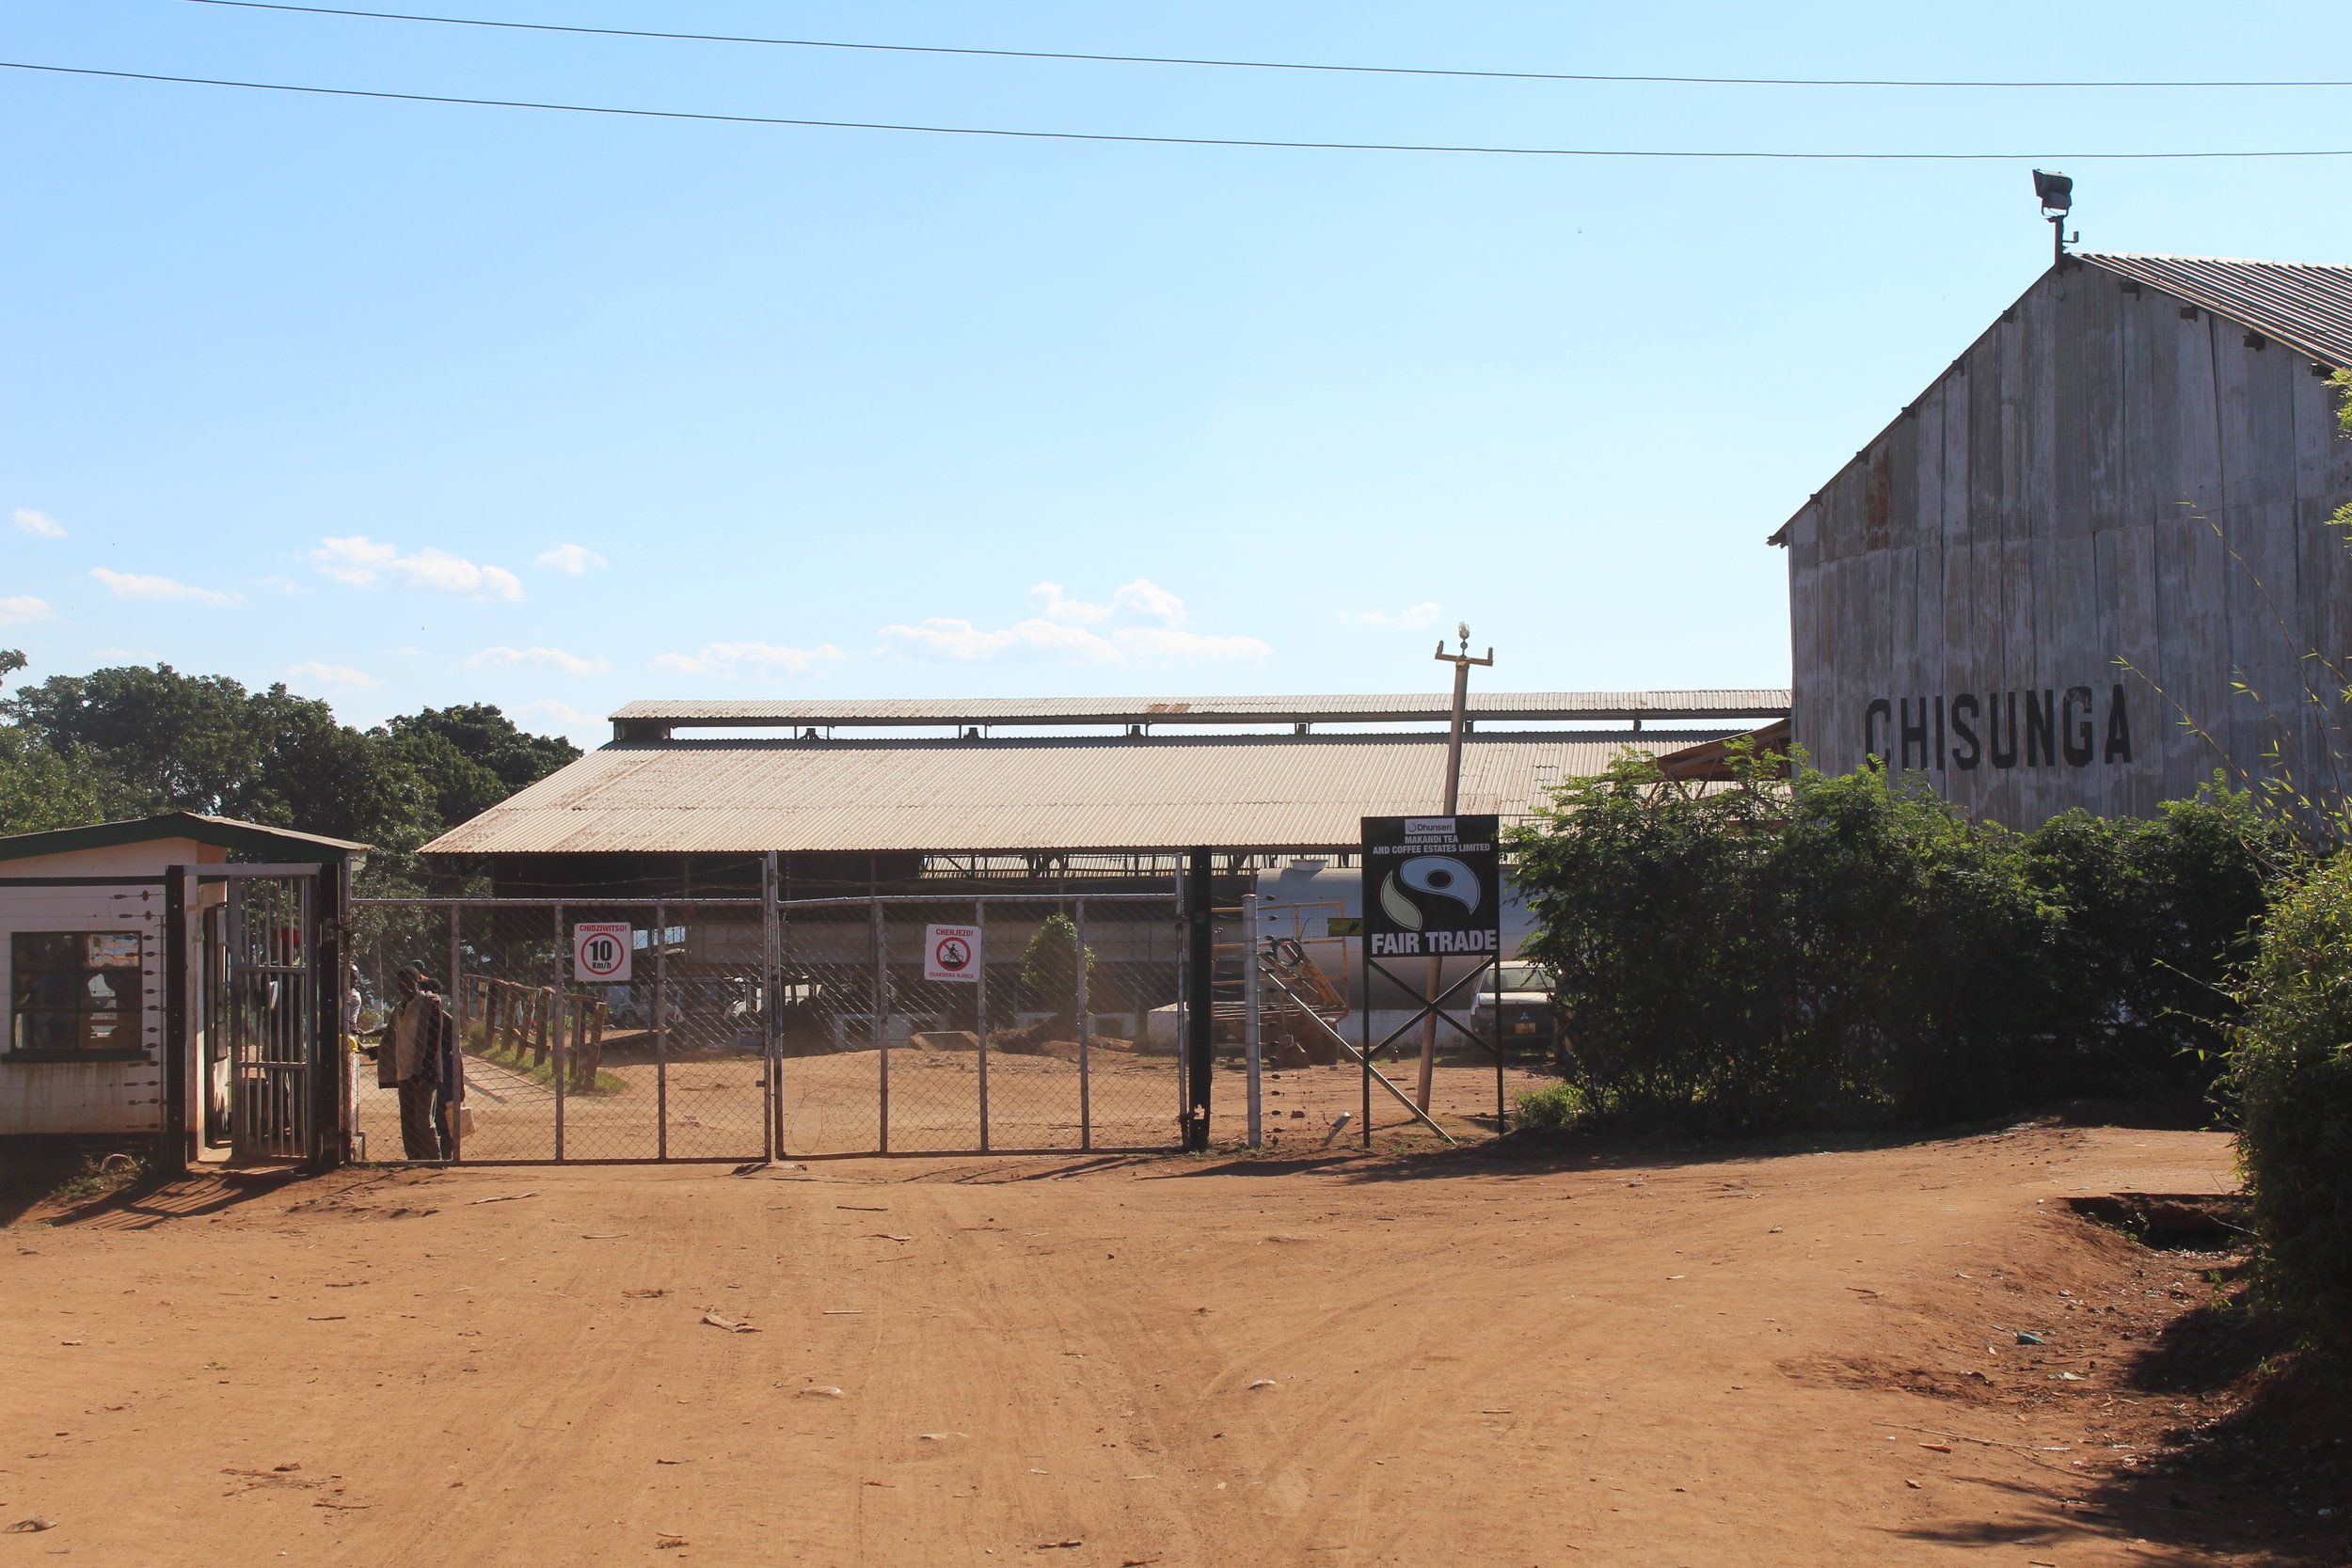 Industrial Factory Setting in Rural Malawi